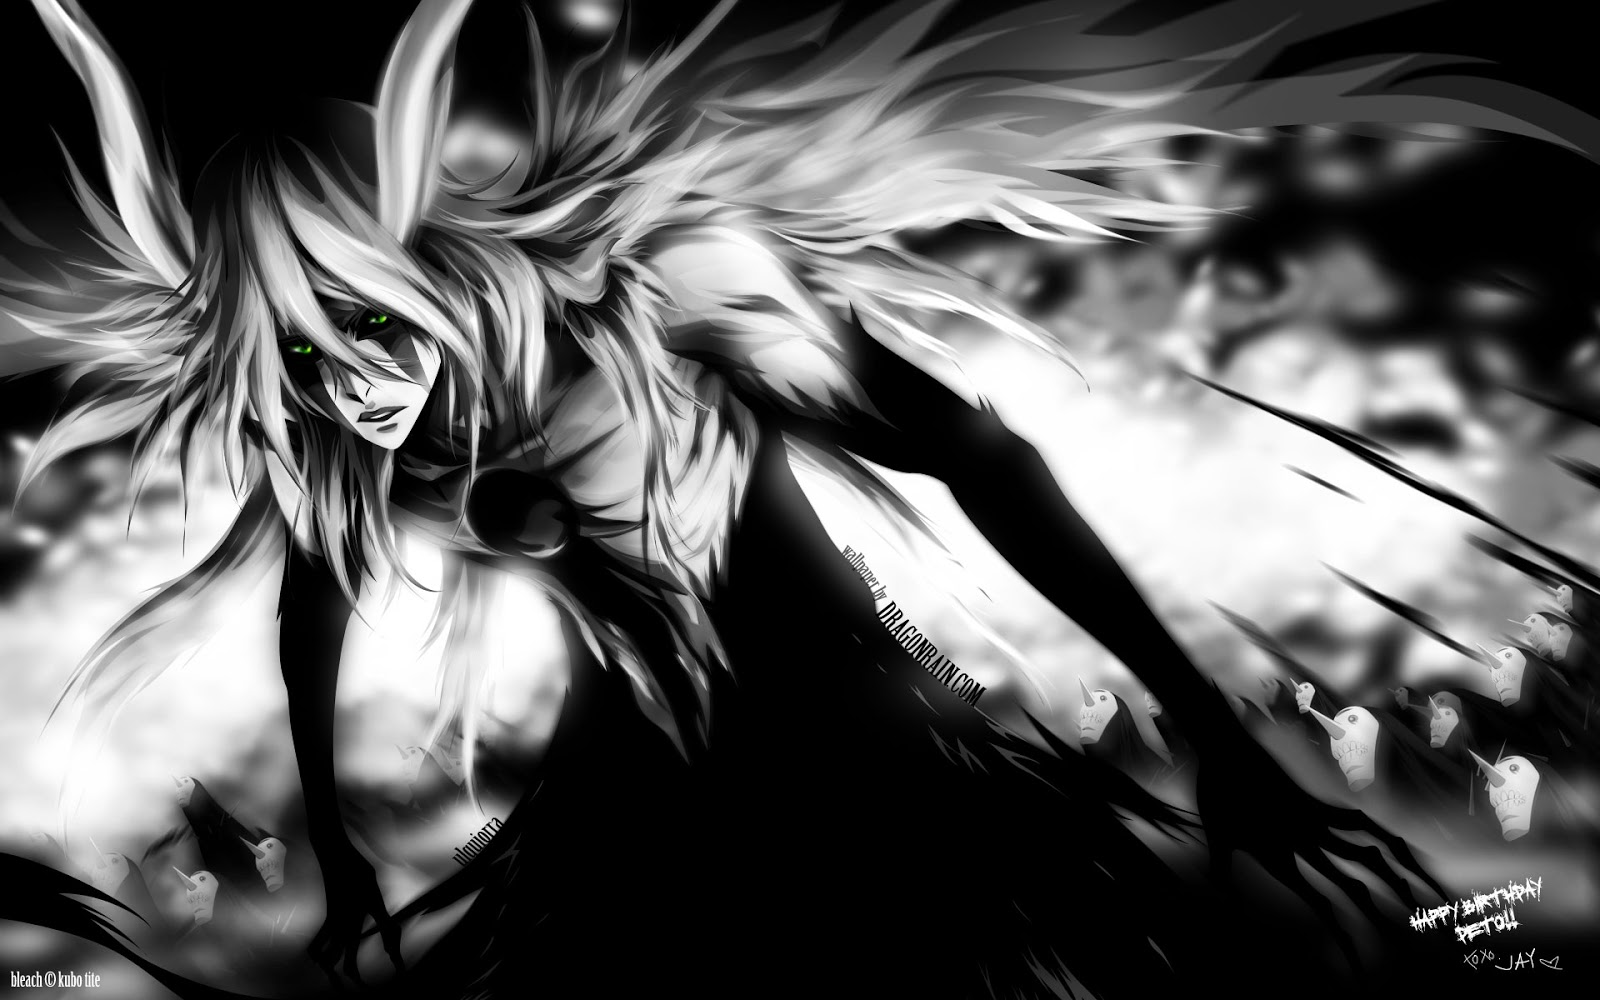 Ulquiorra Cifer 9 Fan Arts and Wallpapers  Your daily Anime Wallpaper and Fan Art